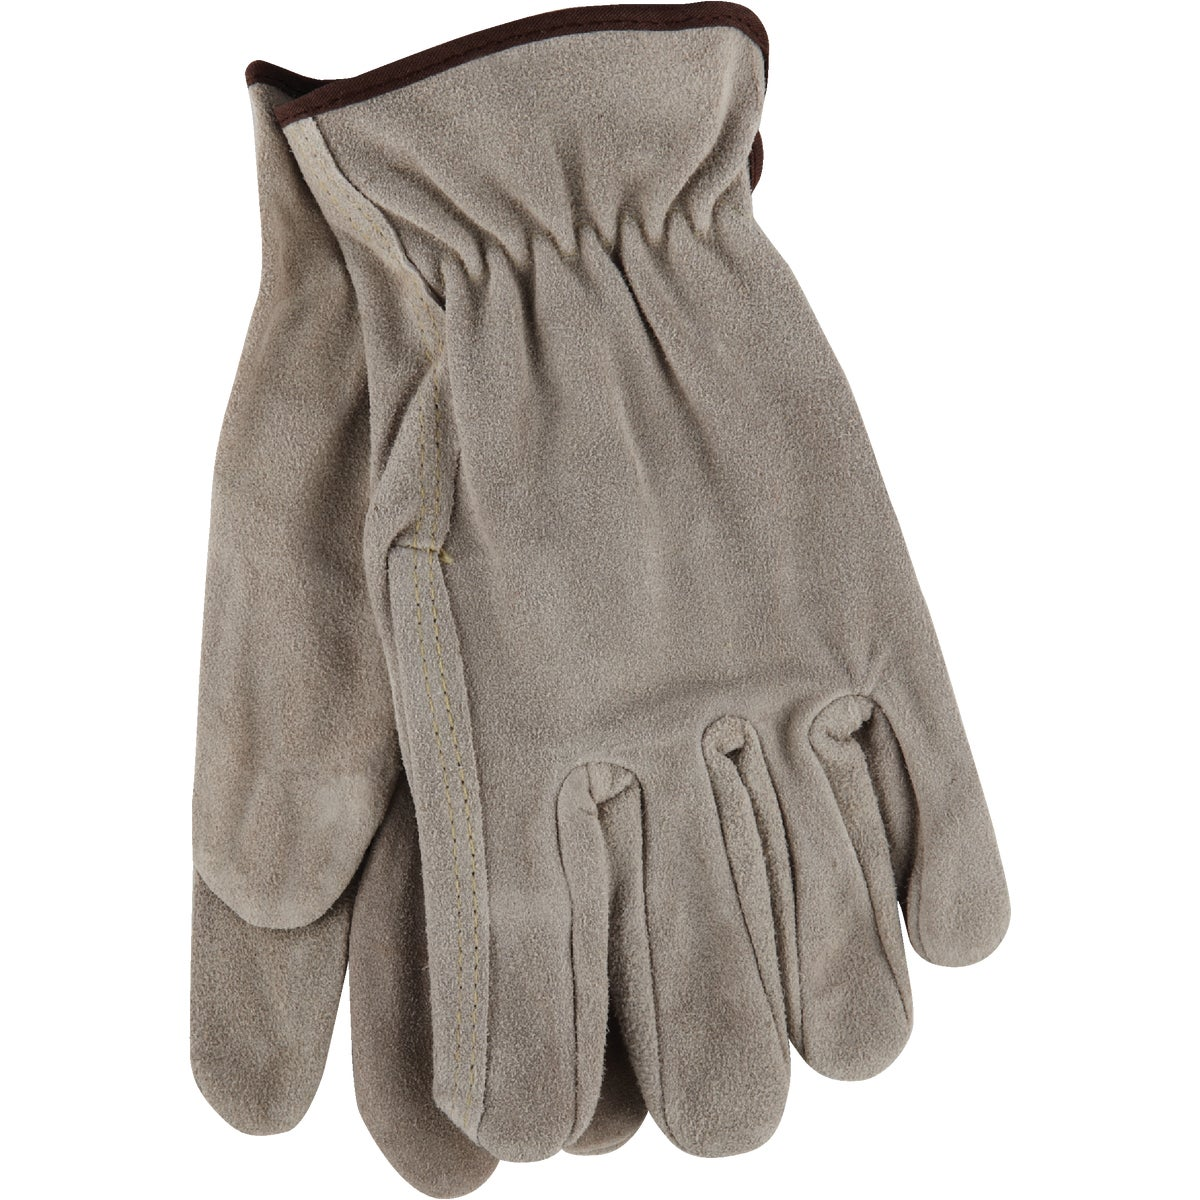 MED SUEDE LEATHER GLOVE - 732125 by Do it Best